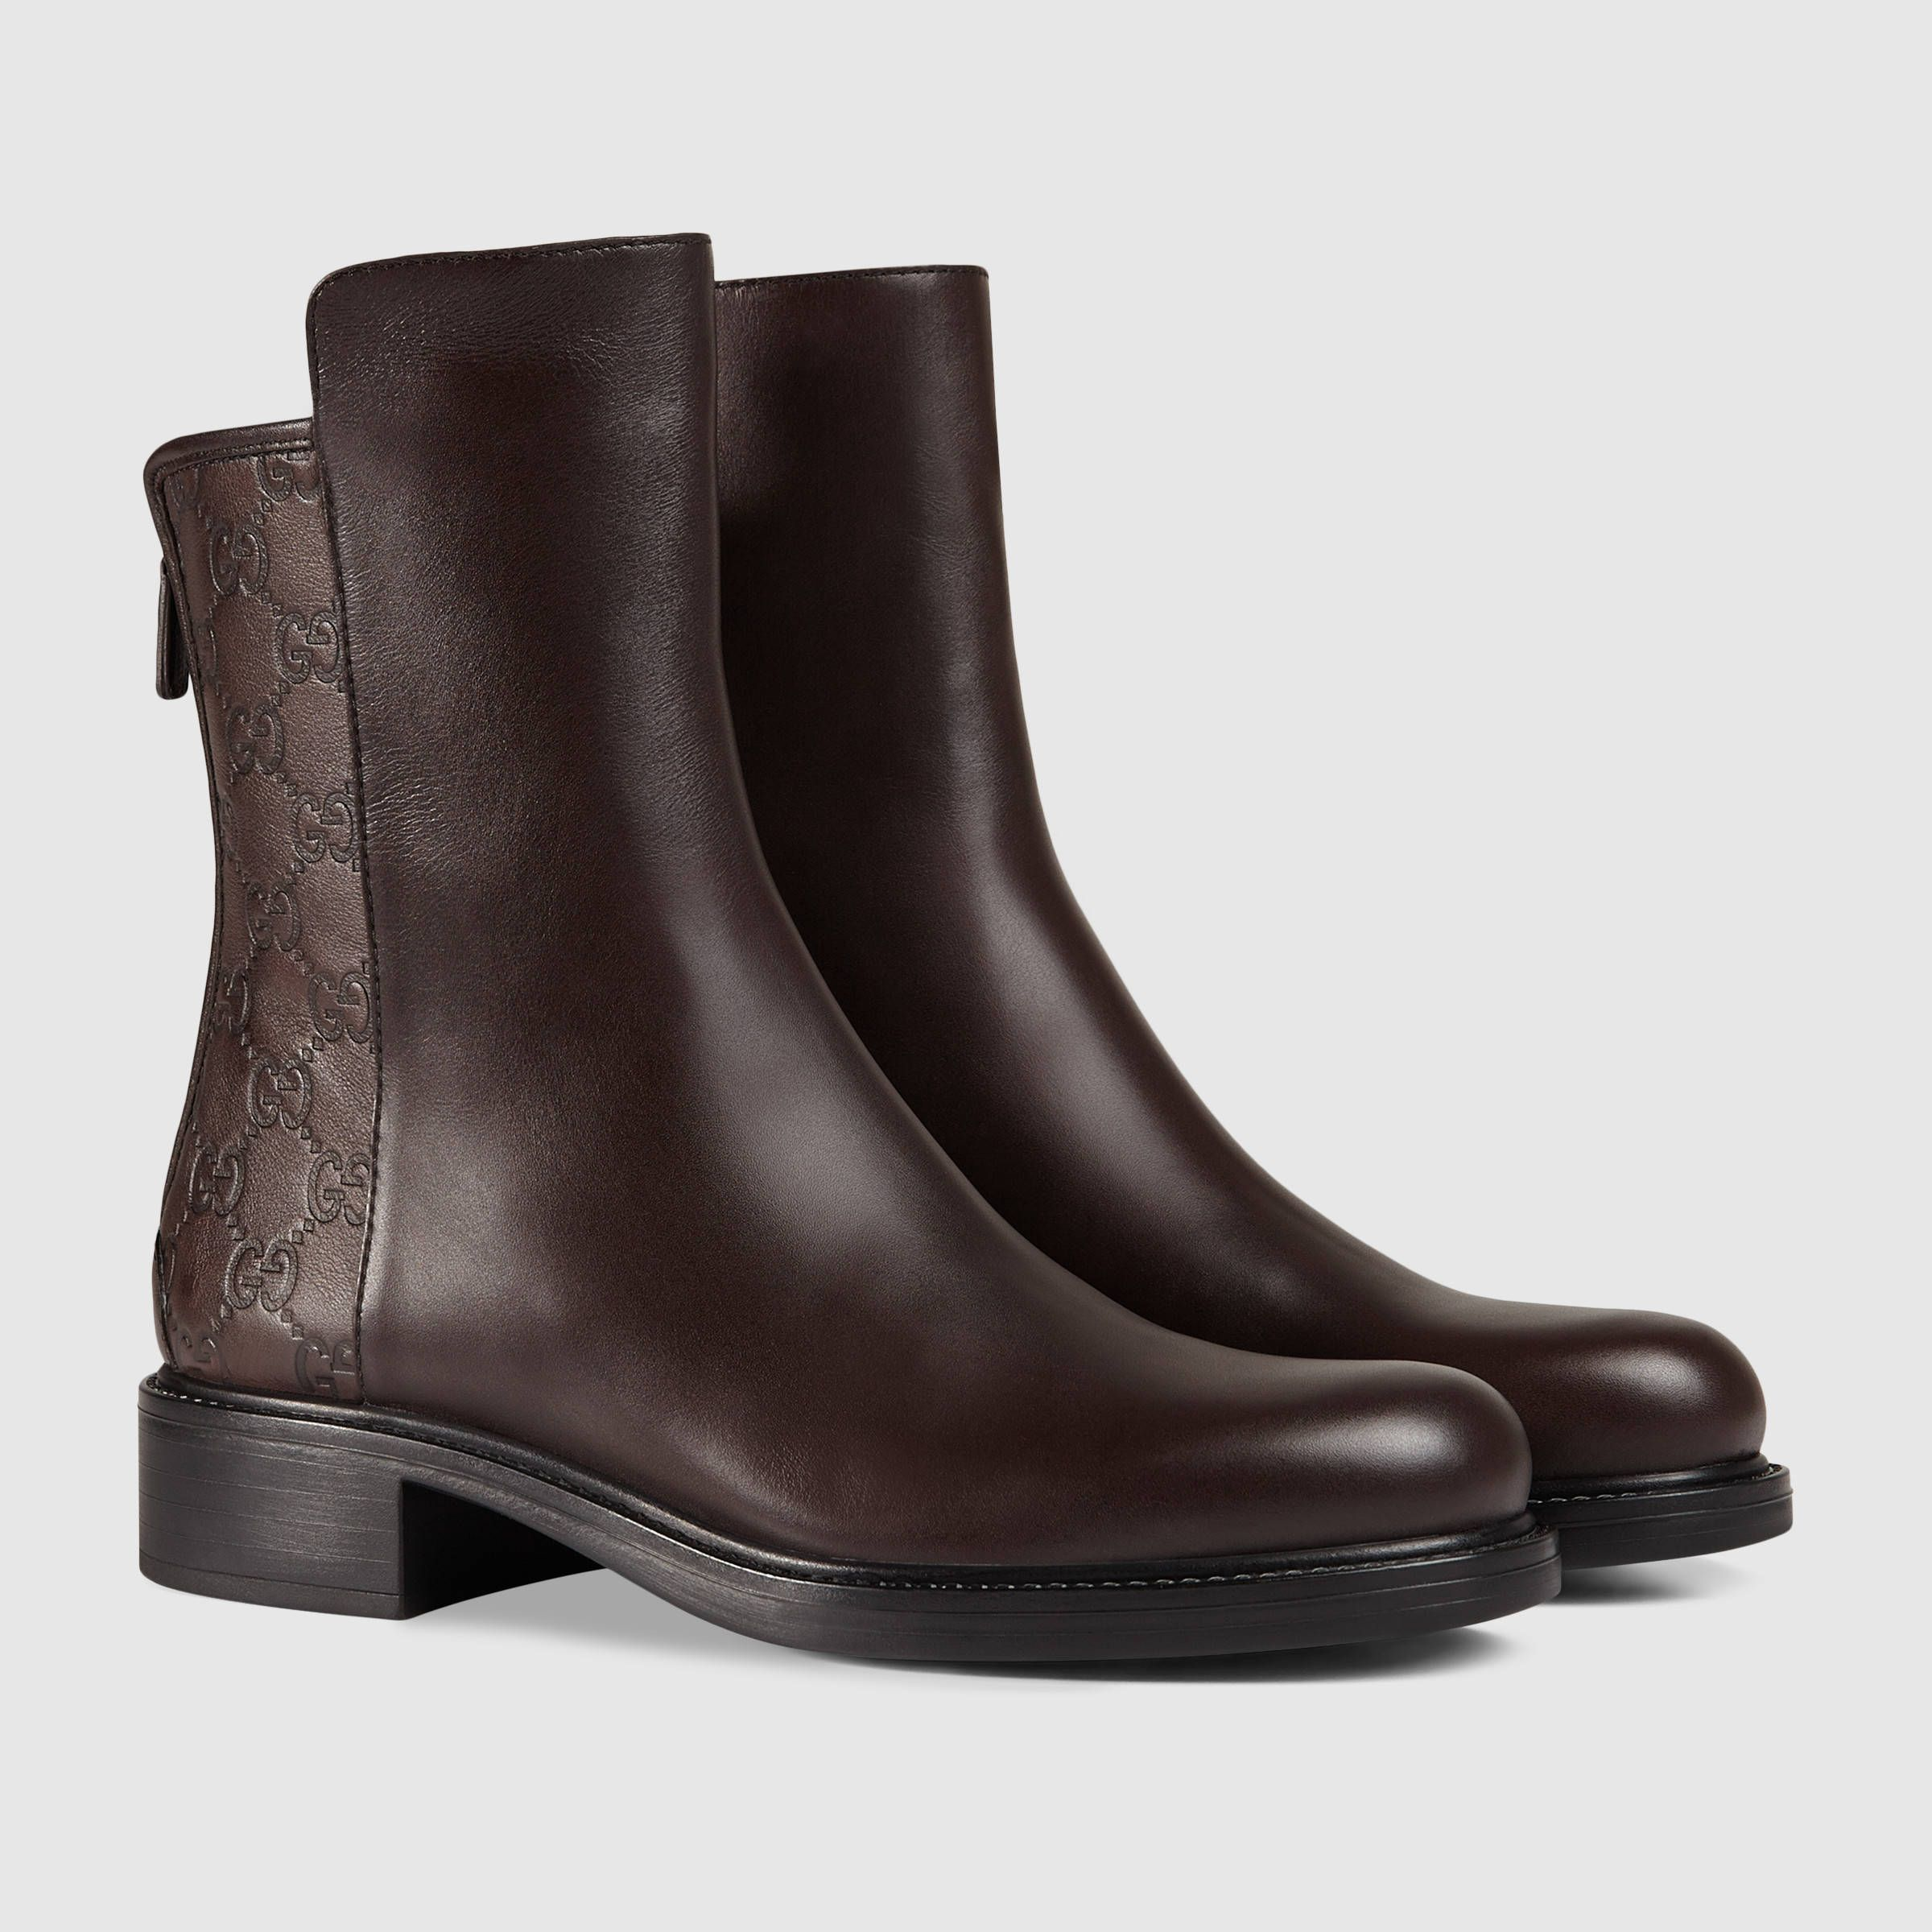 Gucci Women - Gucci Dark Brown Leather ankle boots - $895.00 ...